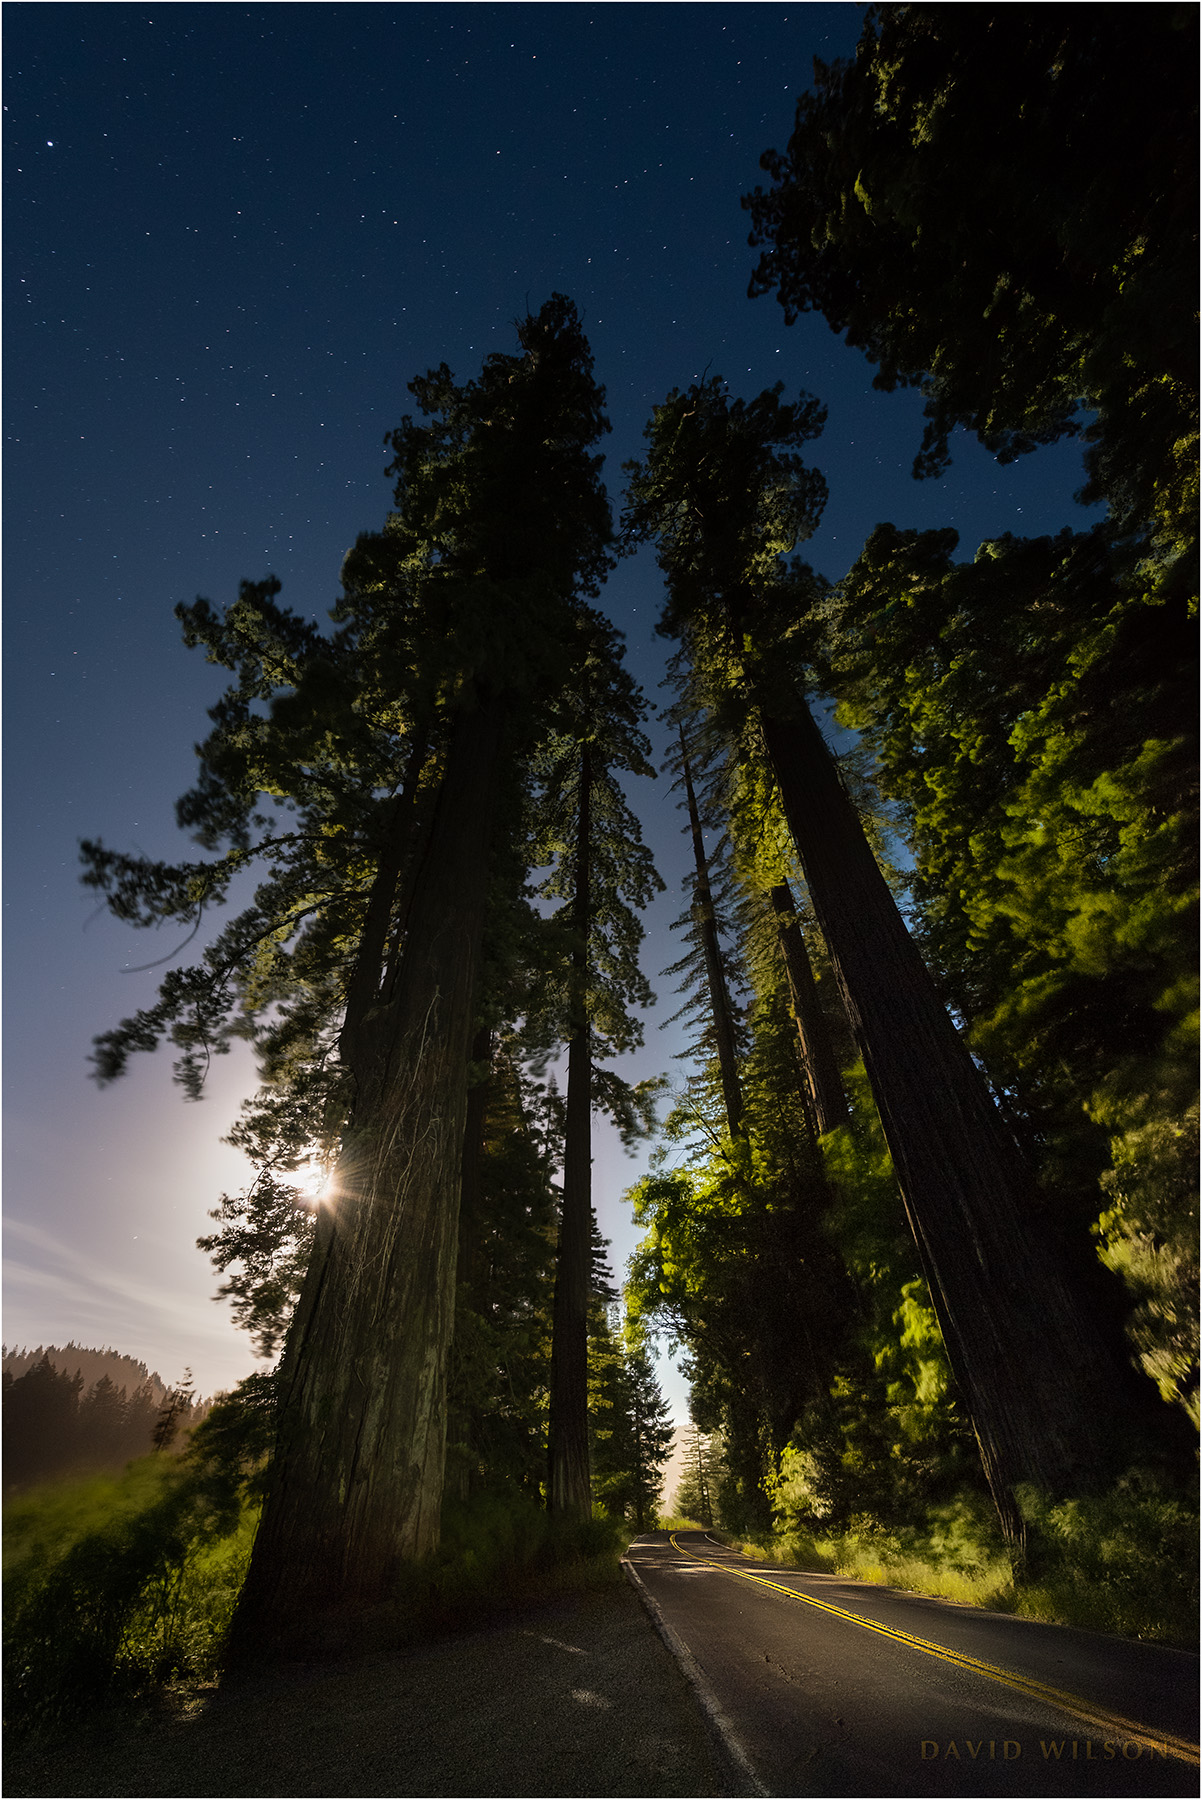 Guardians of the Night. The full moon rises behind towering redwoods standing watch on the Avenue of the Giants. Humboldt County, California.